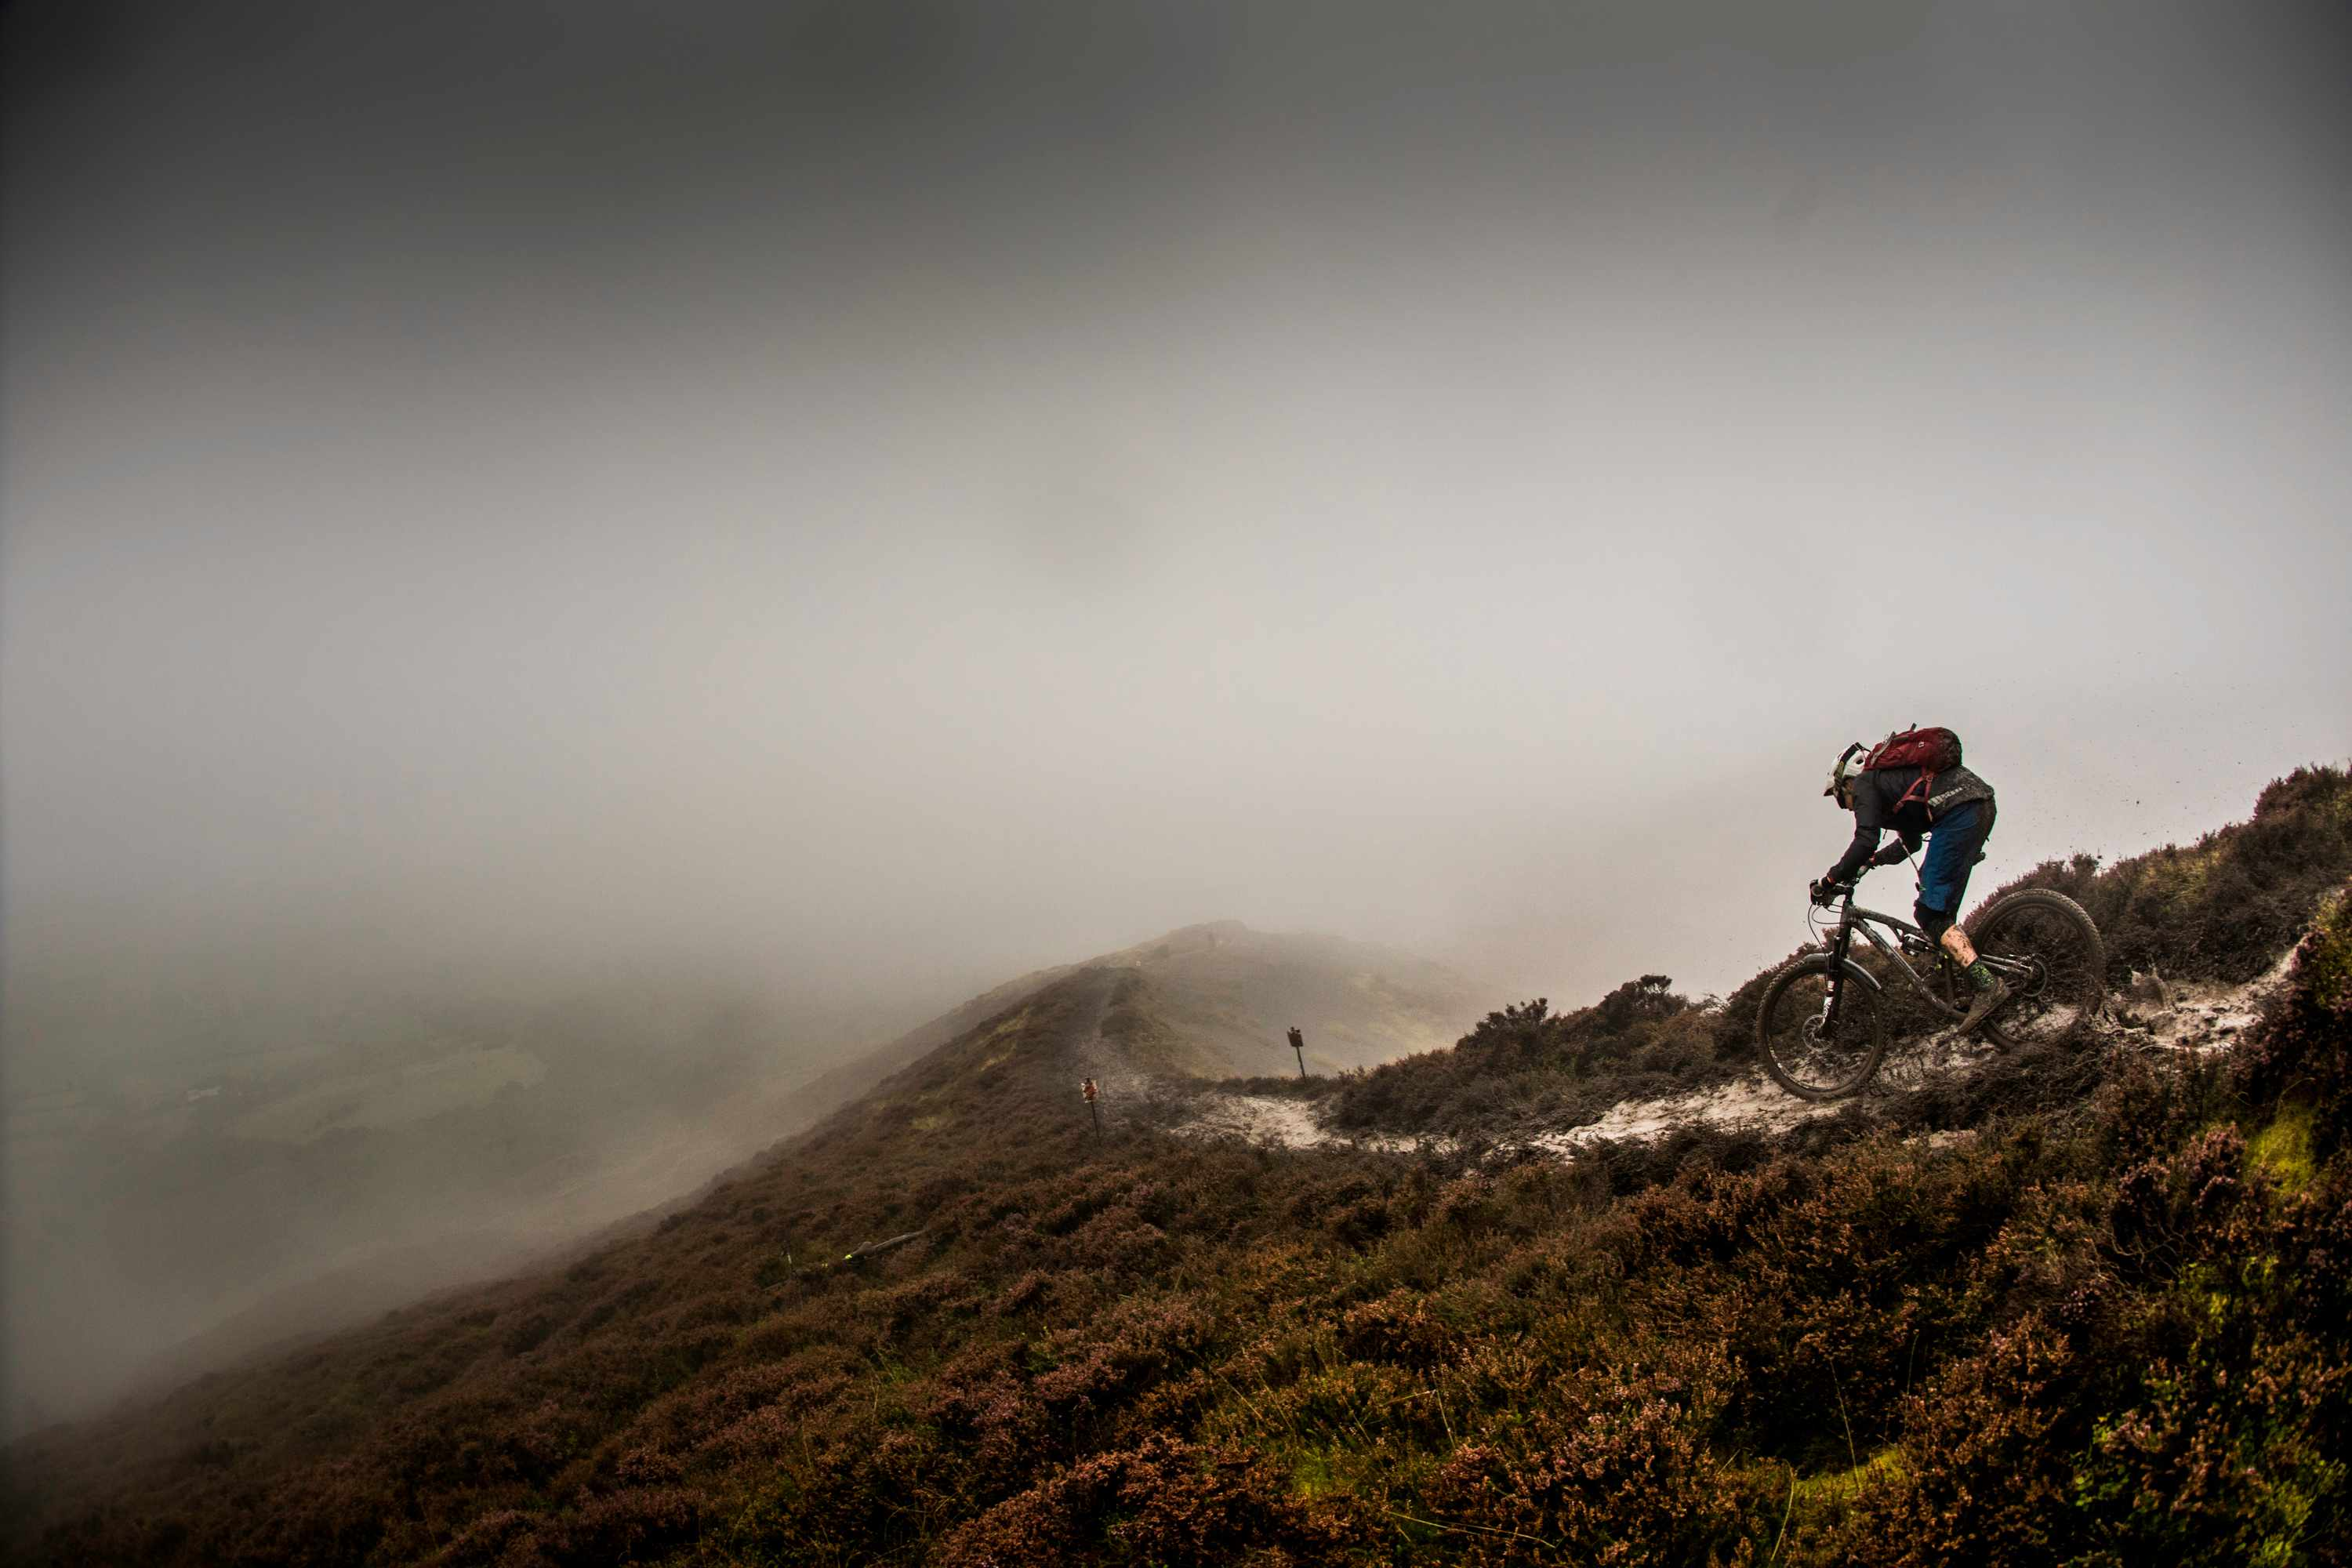 Ard-Moors-Enduro-into-the-mist